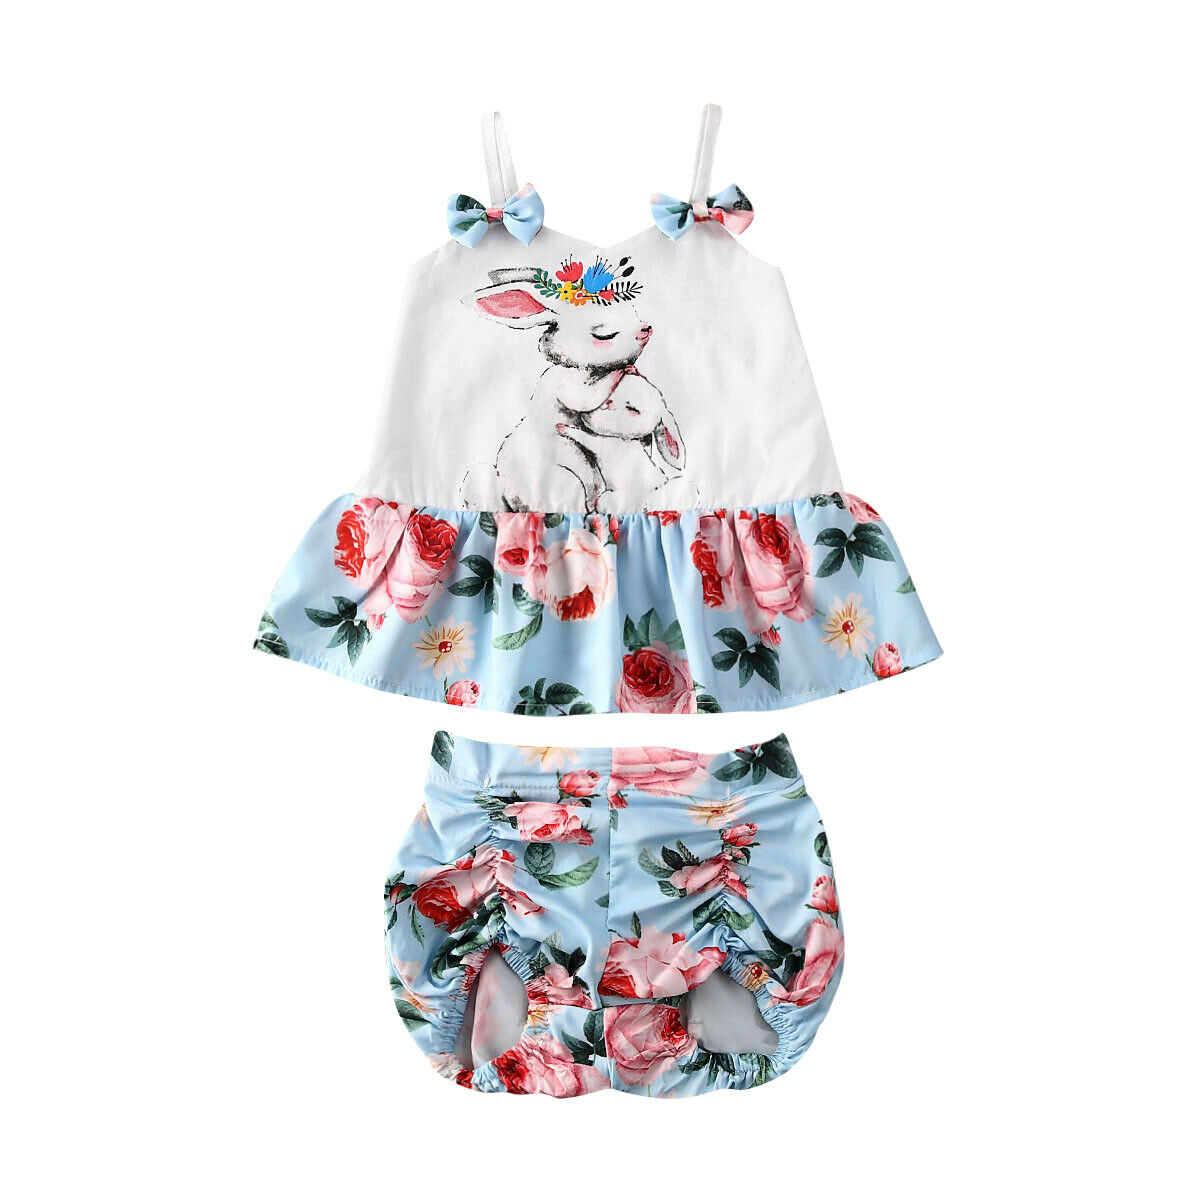 Short Pants Baby Girls Summer Outfits Set Floral Ruffle Sleeve Tank Tops